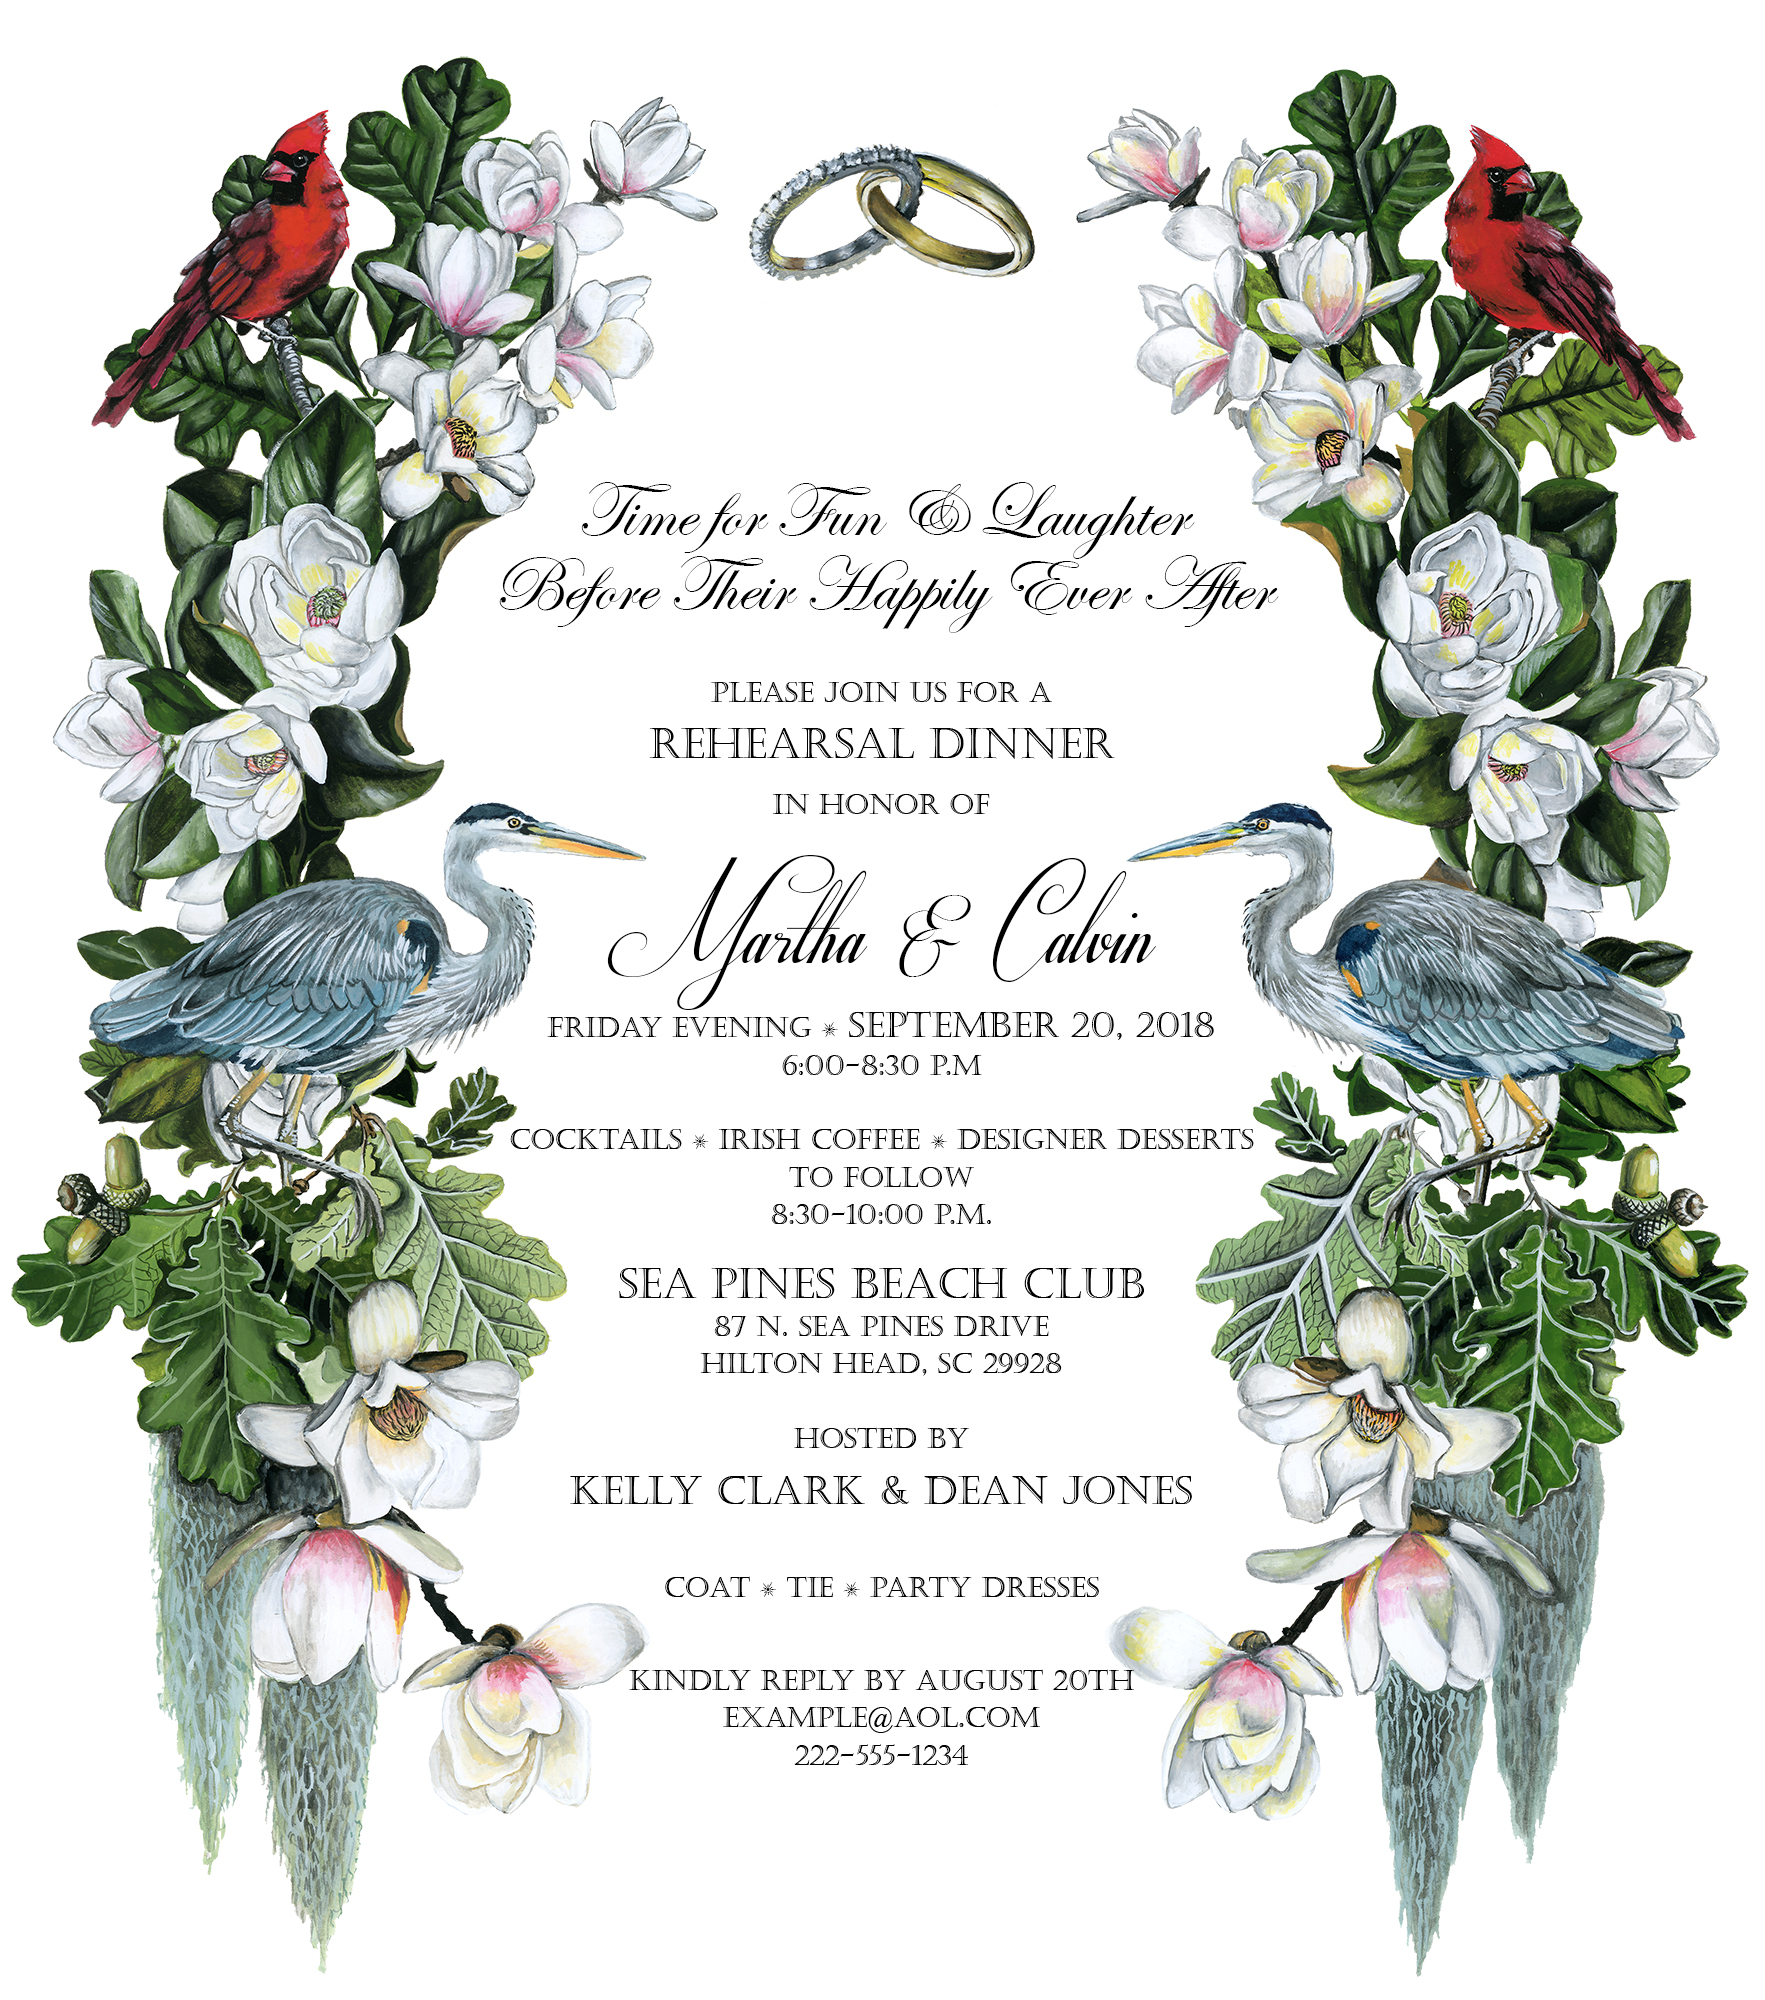 South Carolina Rehearsal Dinner Custom Invitation